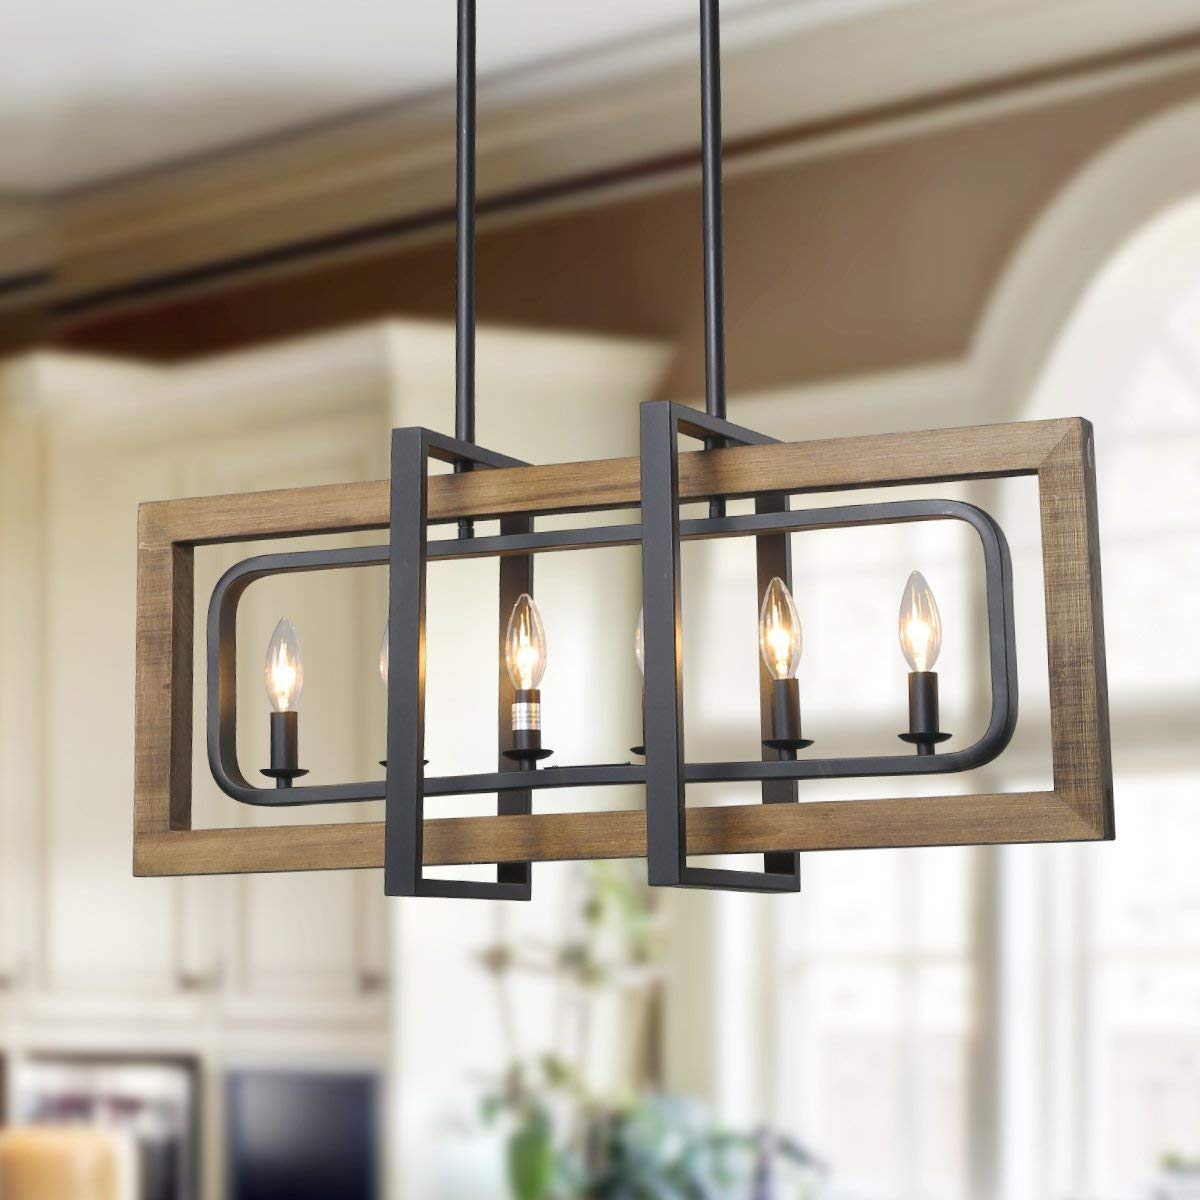 Surprising Log Barn 6 Lights Farmhouse Island Pendant Chandelier In Distressed Wood And Matte Black Metal Finish 31 5 Large Kitchen Light Fixture A03429 Interior Design Ideas Truasarkarijobsexamcom